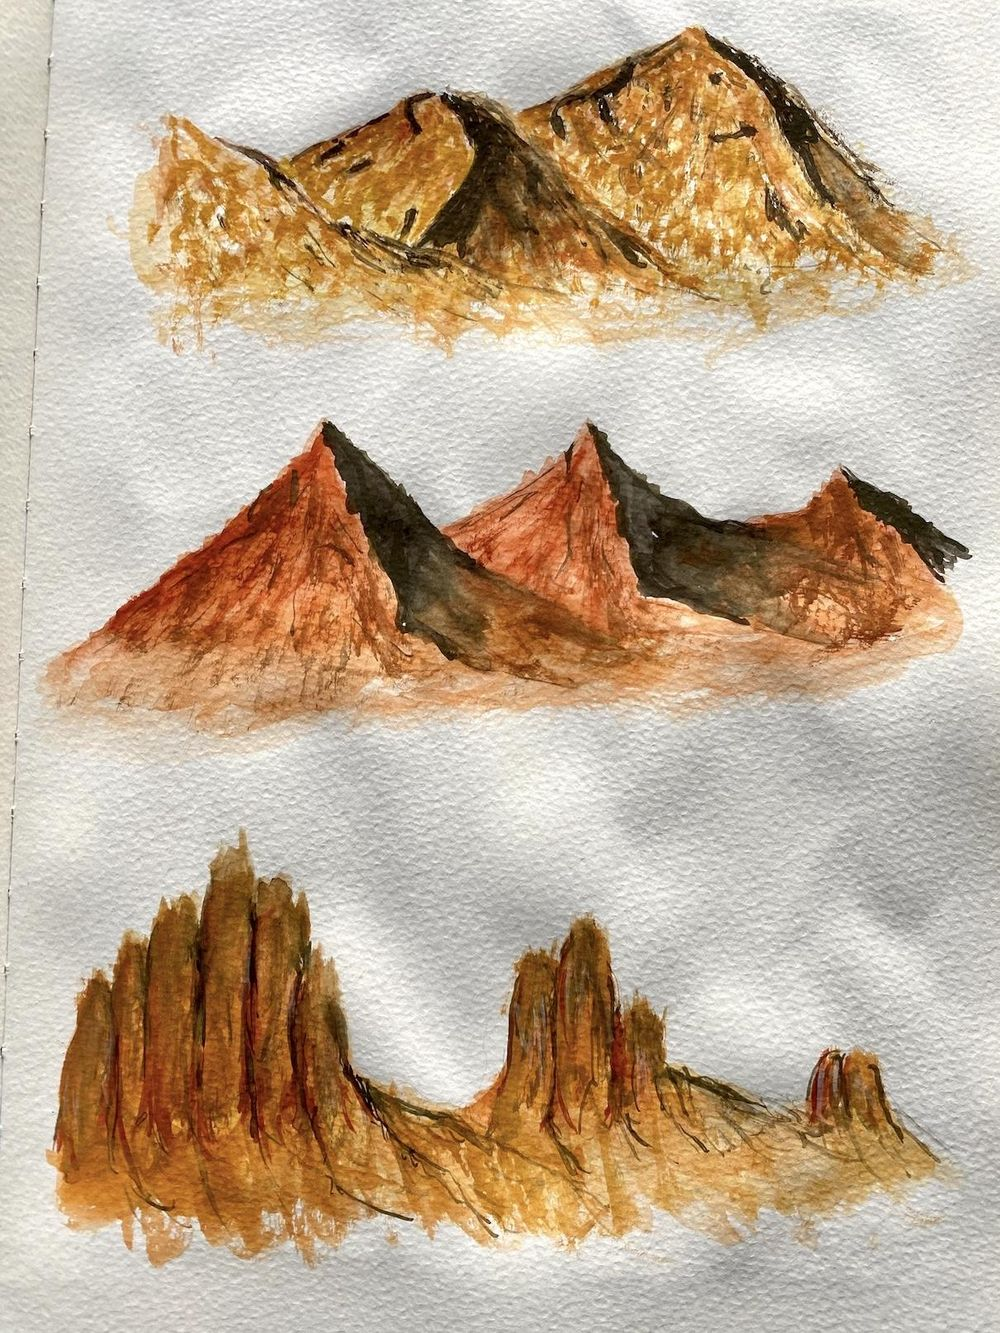 Watercolor landscapes - Z. Nabeel - image 4 - student project